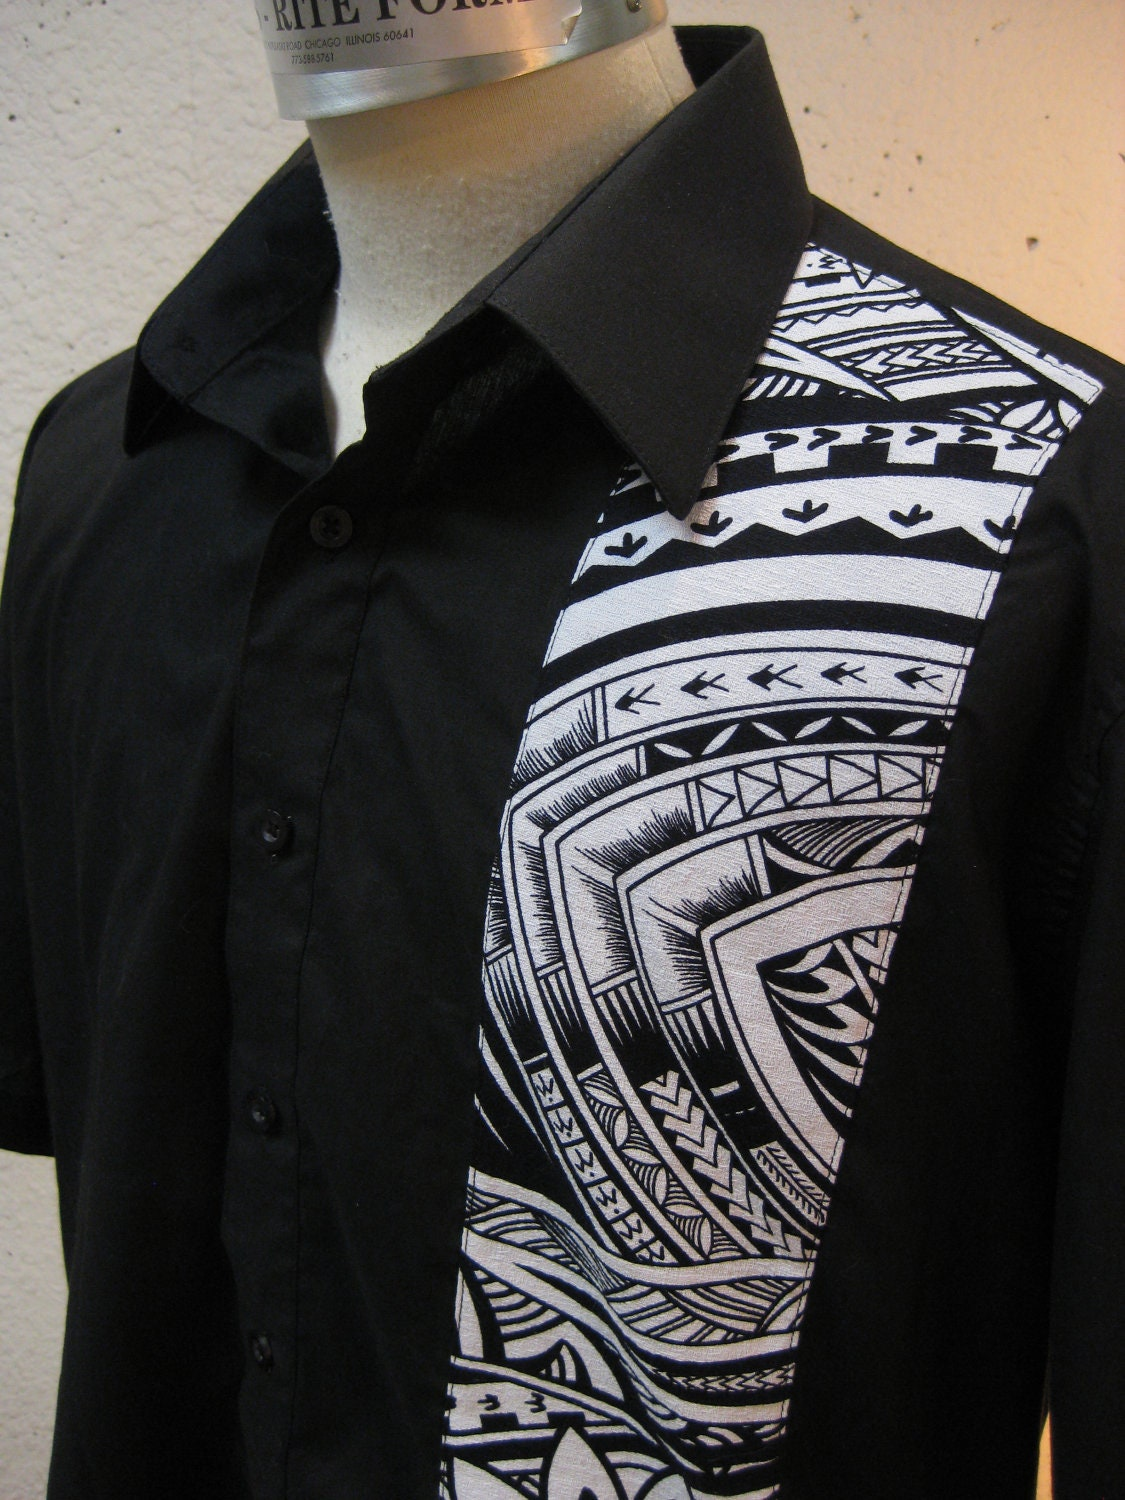 aloha shirt black with samoan tattoo print last one by luckyzelda. Black Bedroom Furniture Sets. Home Design Ideas